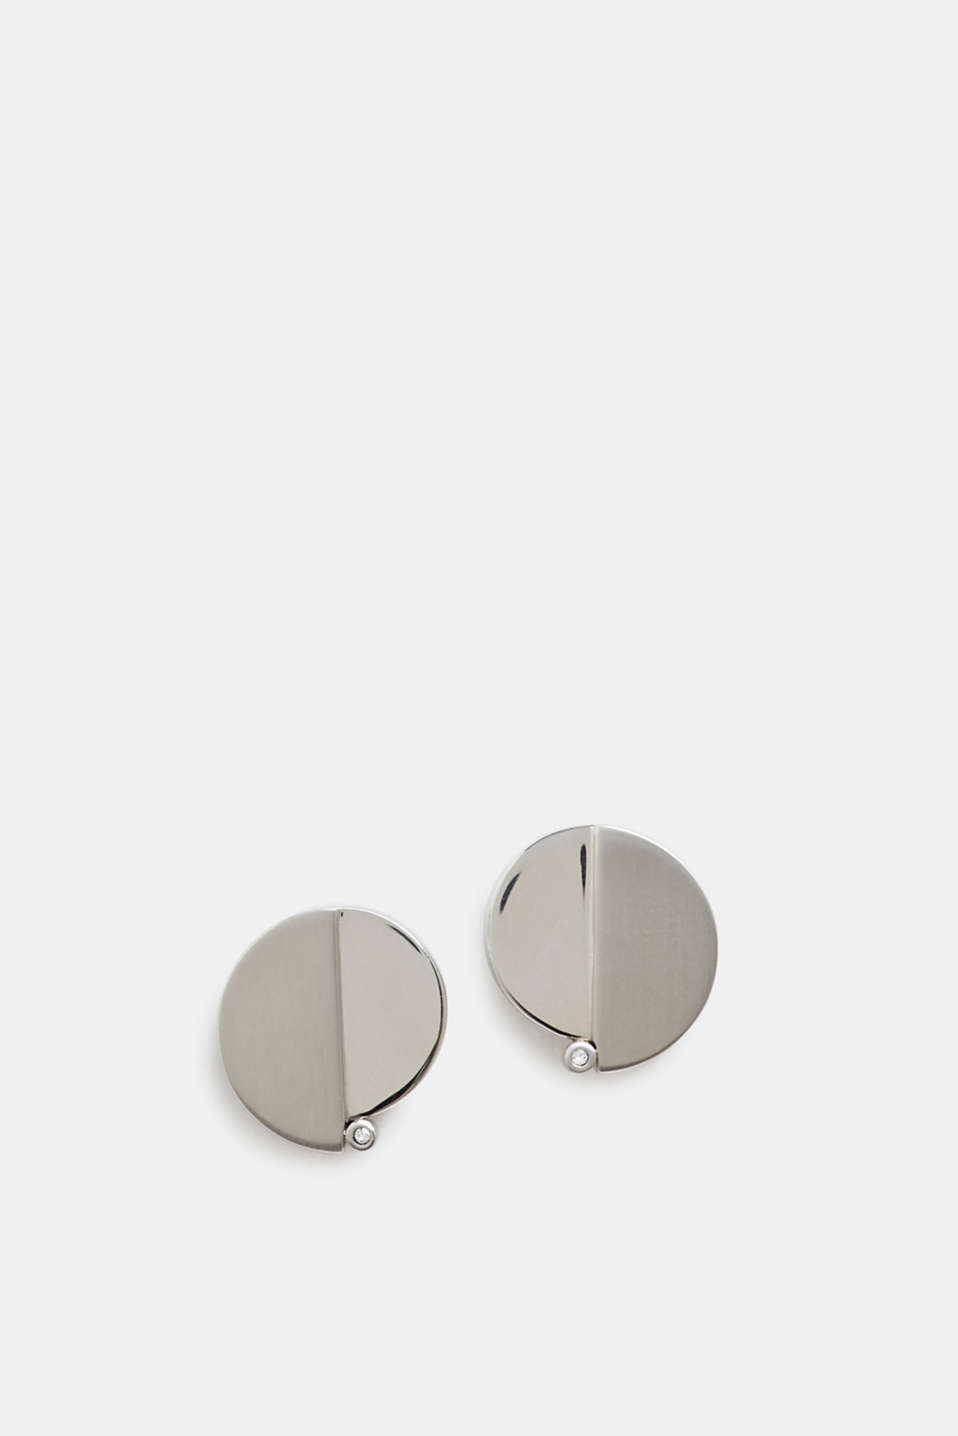 Esprit - Stainless steel stud earrings with zirconia trim